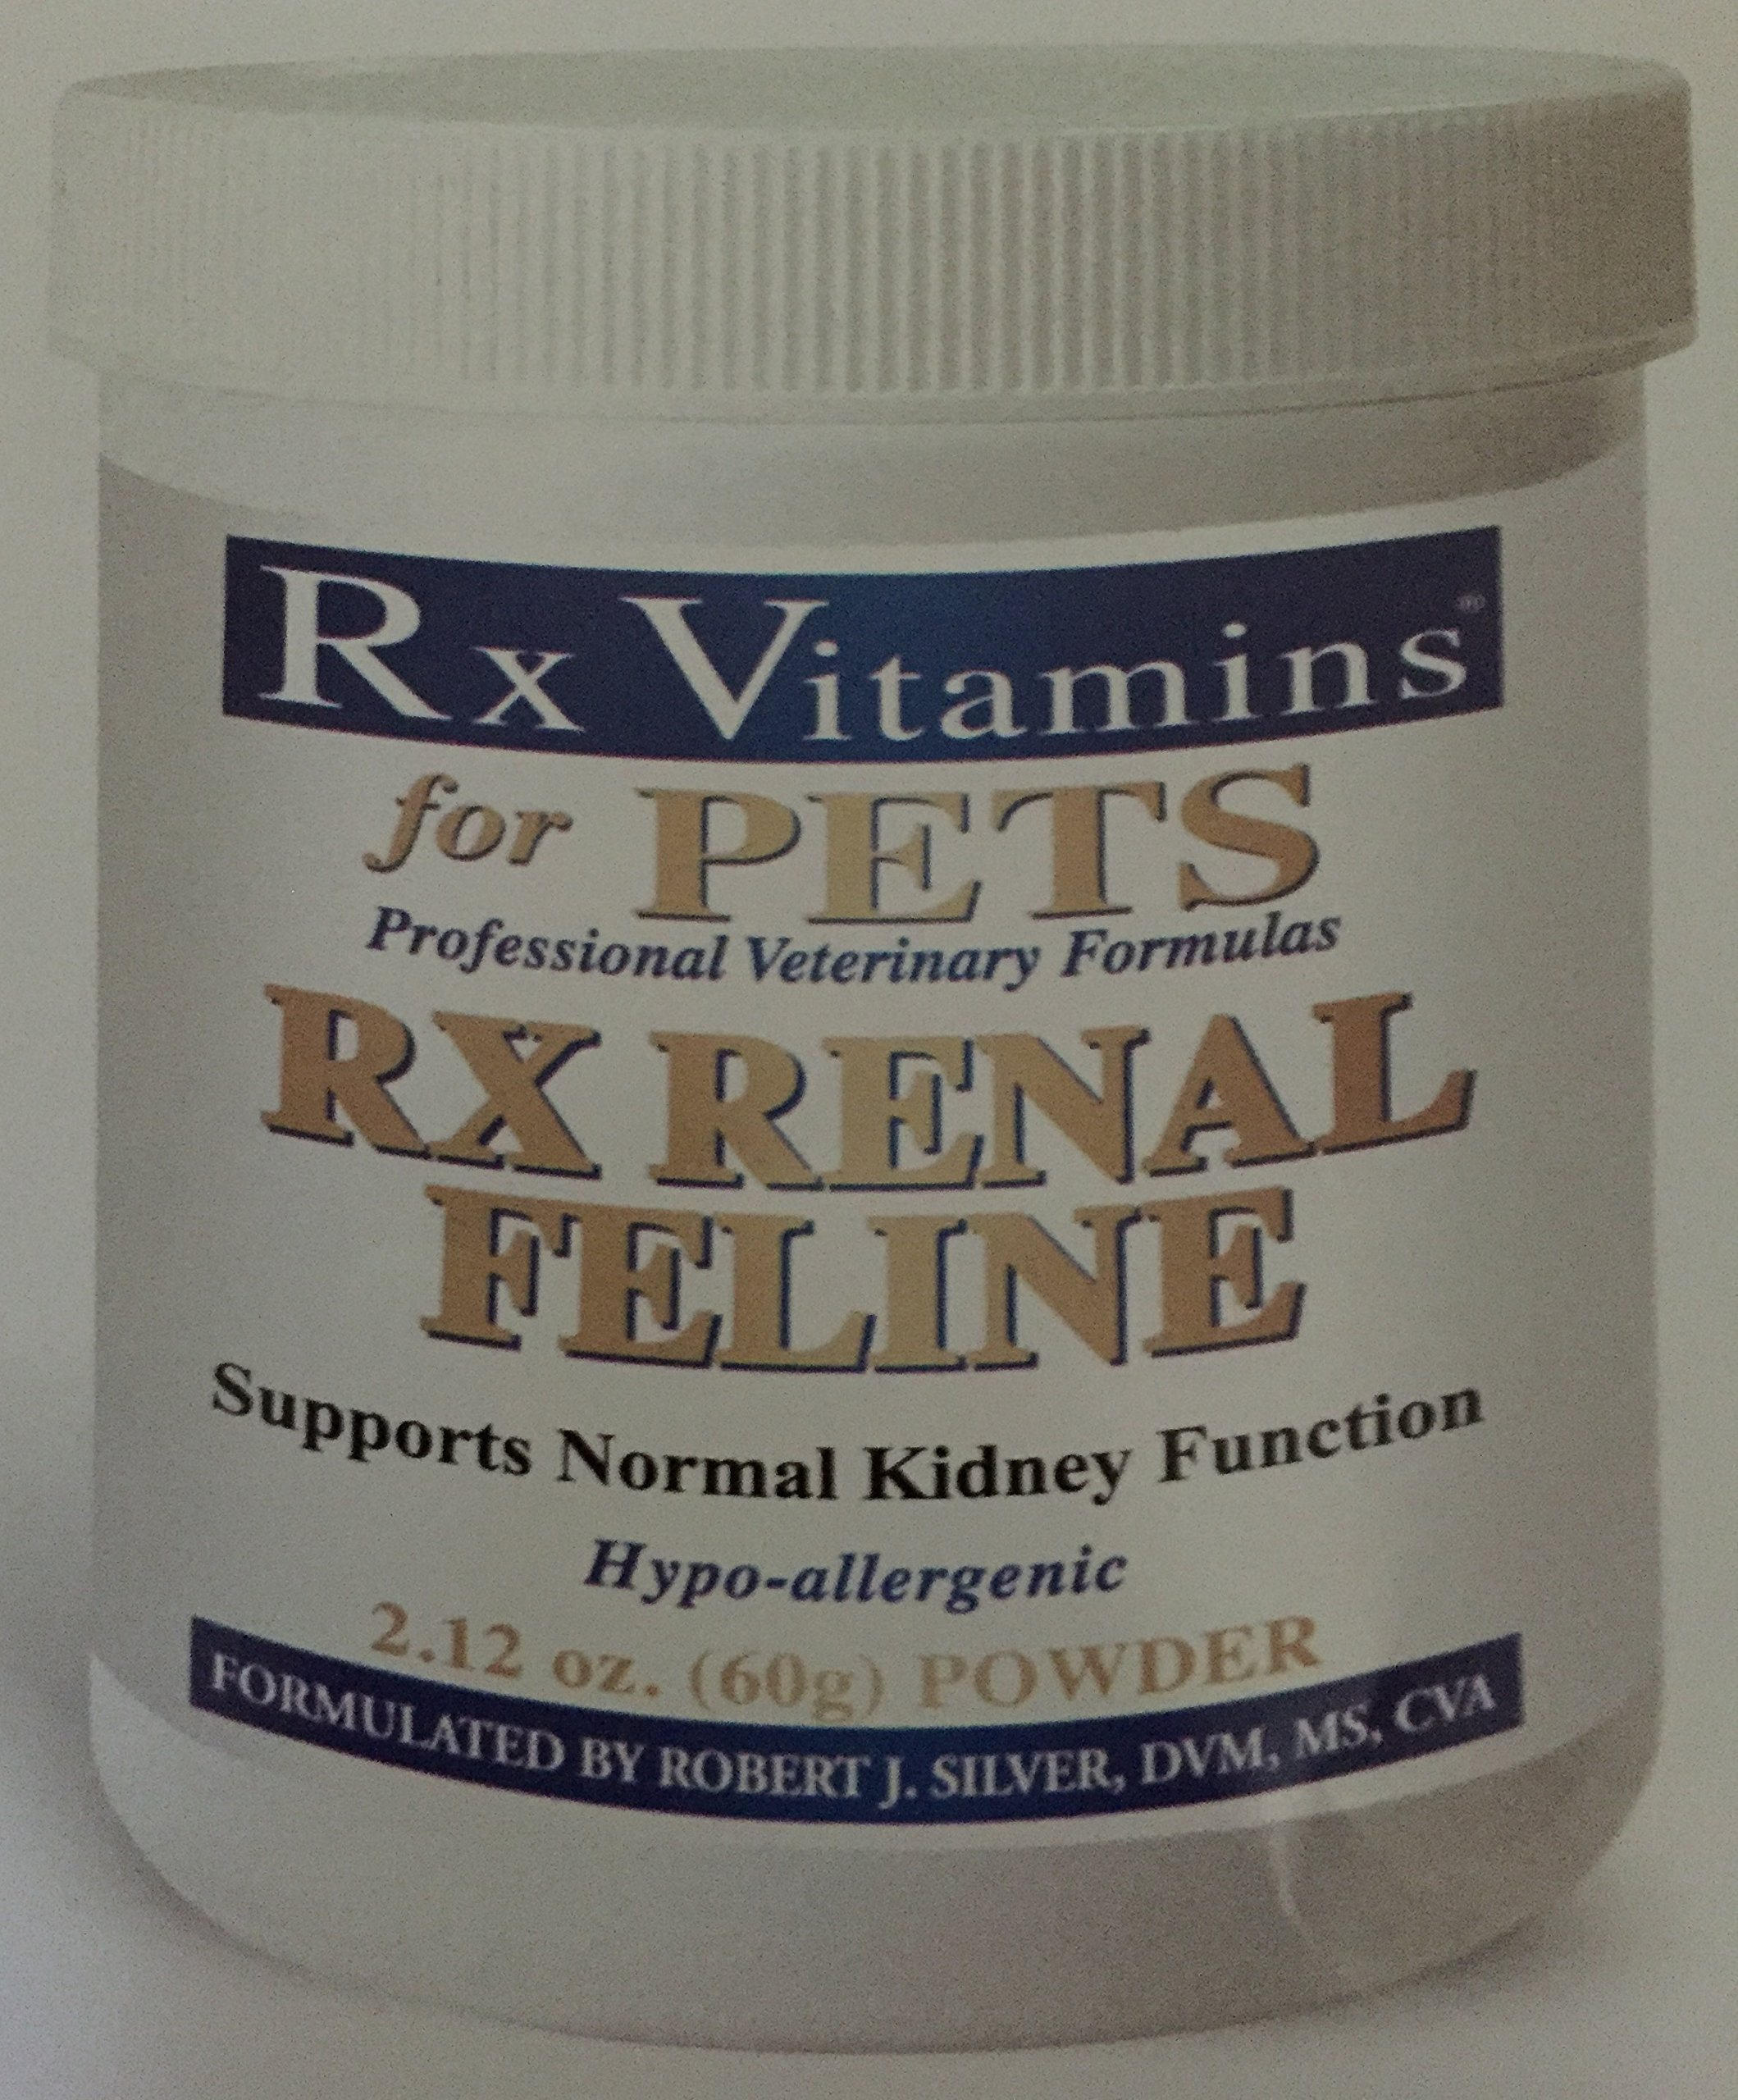 Rx Vitamins For Pets - Rx Renal Feline Powder 2.12 oz